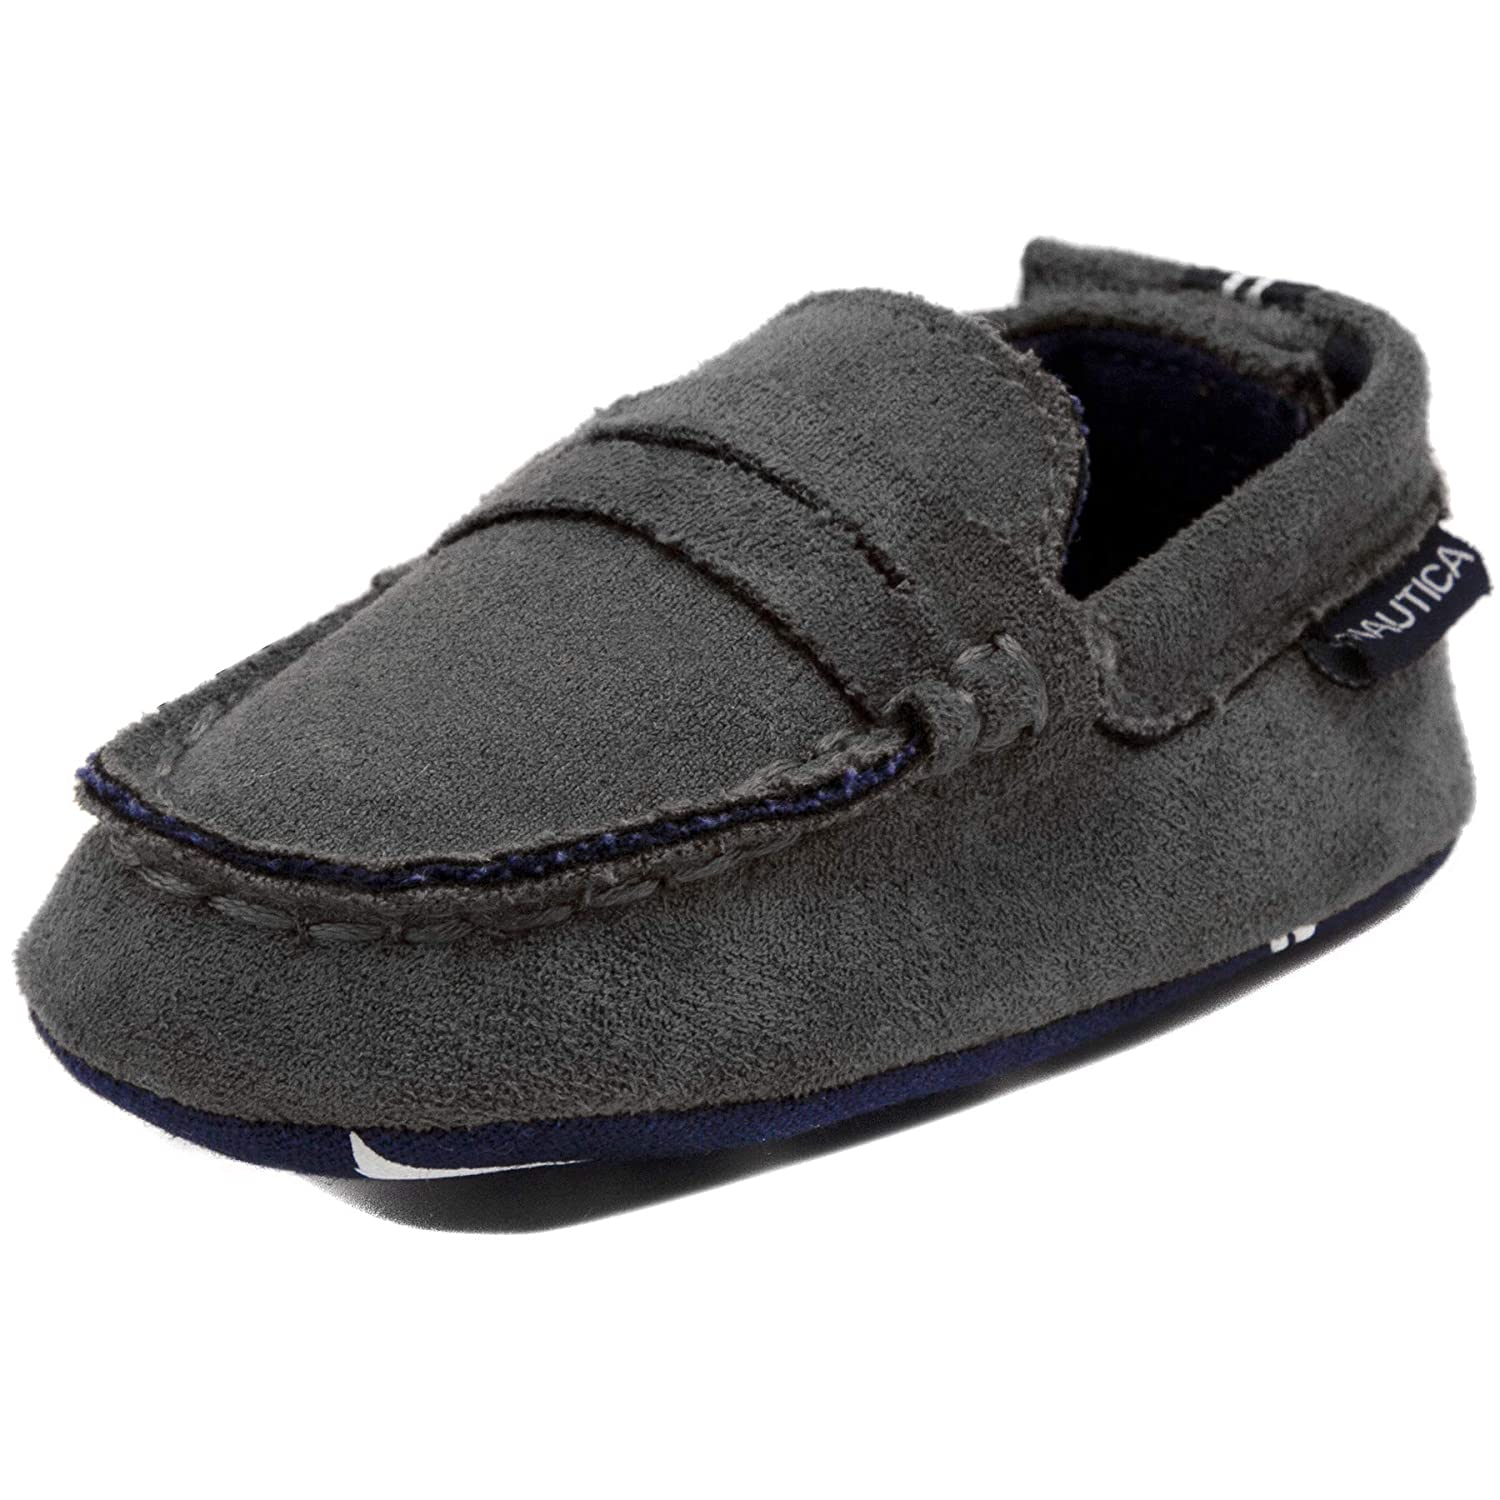 Toddler//Infant Soft Sole Shoes Baby Prewalker Nautica Tiny Pryson Slip-On Crib Penny Loafer